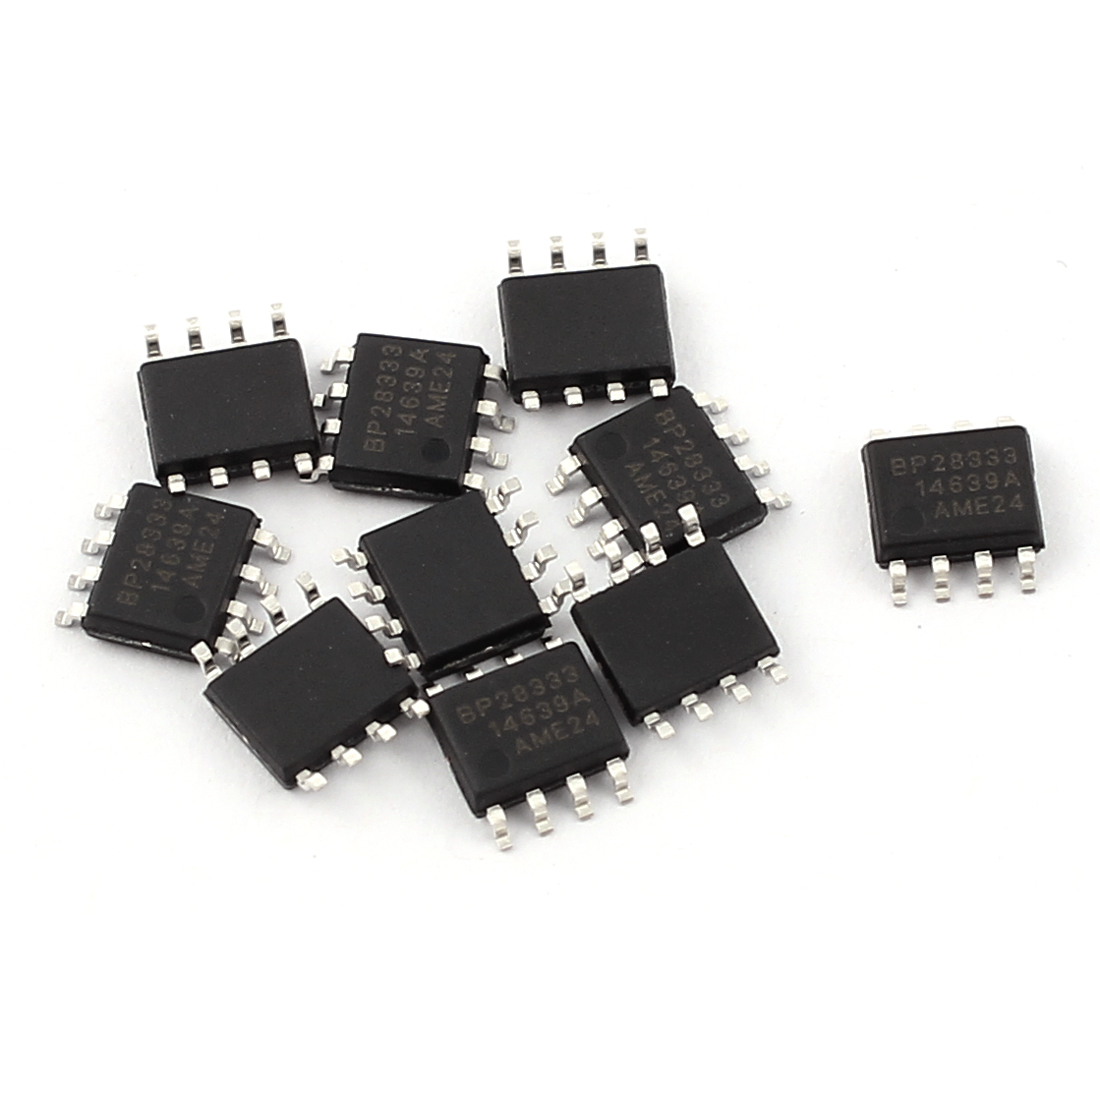 10Pcs BP28333 SOP-8 SMD SMT Type PCB Surface Mount LED Driver Circuit Module Integrated Circuit IC Chip